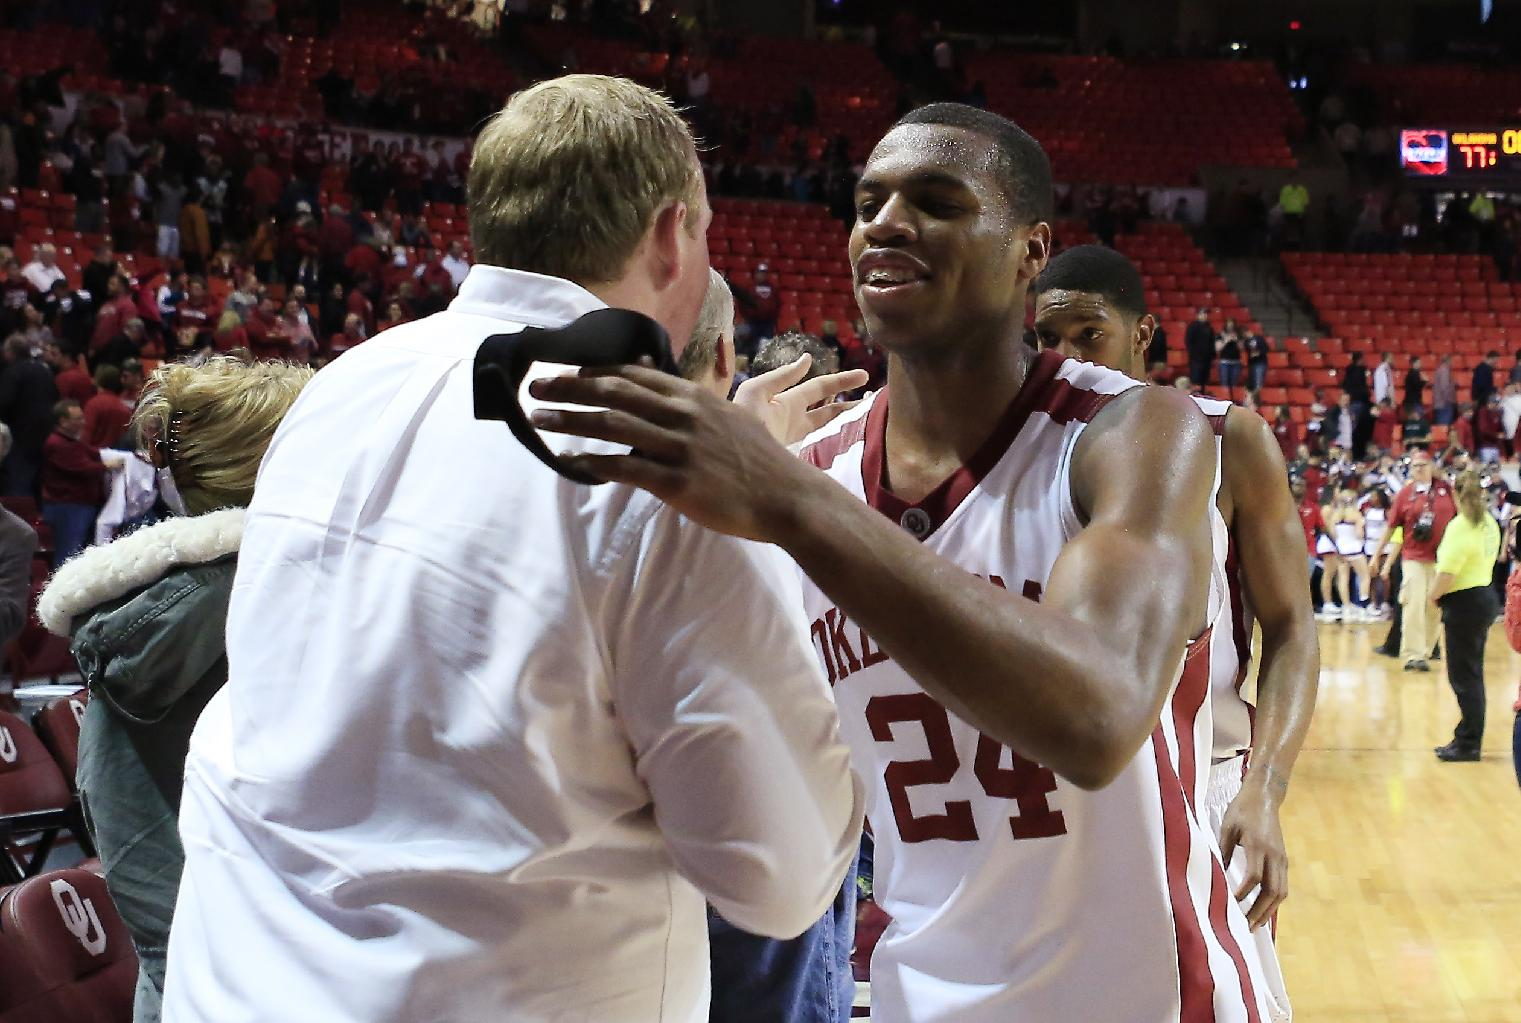 Oklahoma guard Buddy Hield (24) hugs a fan after Oklahoma defeated Texas in an NCAA college basketball game in Norman, Okla., Saturday, March 1, 2014. Oklahoma won 77-65